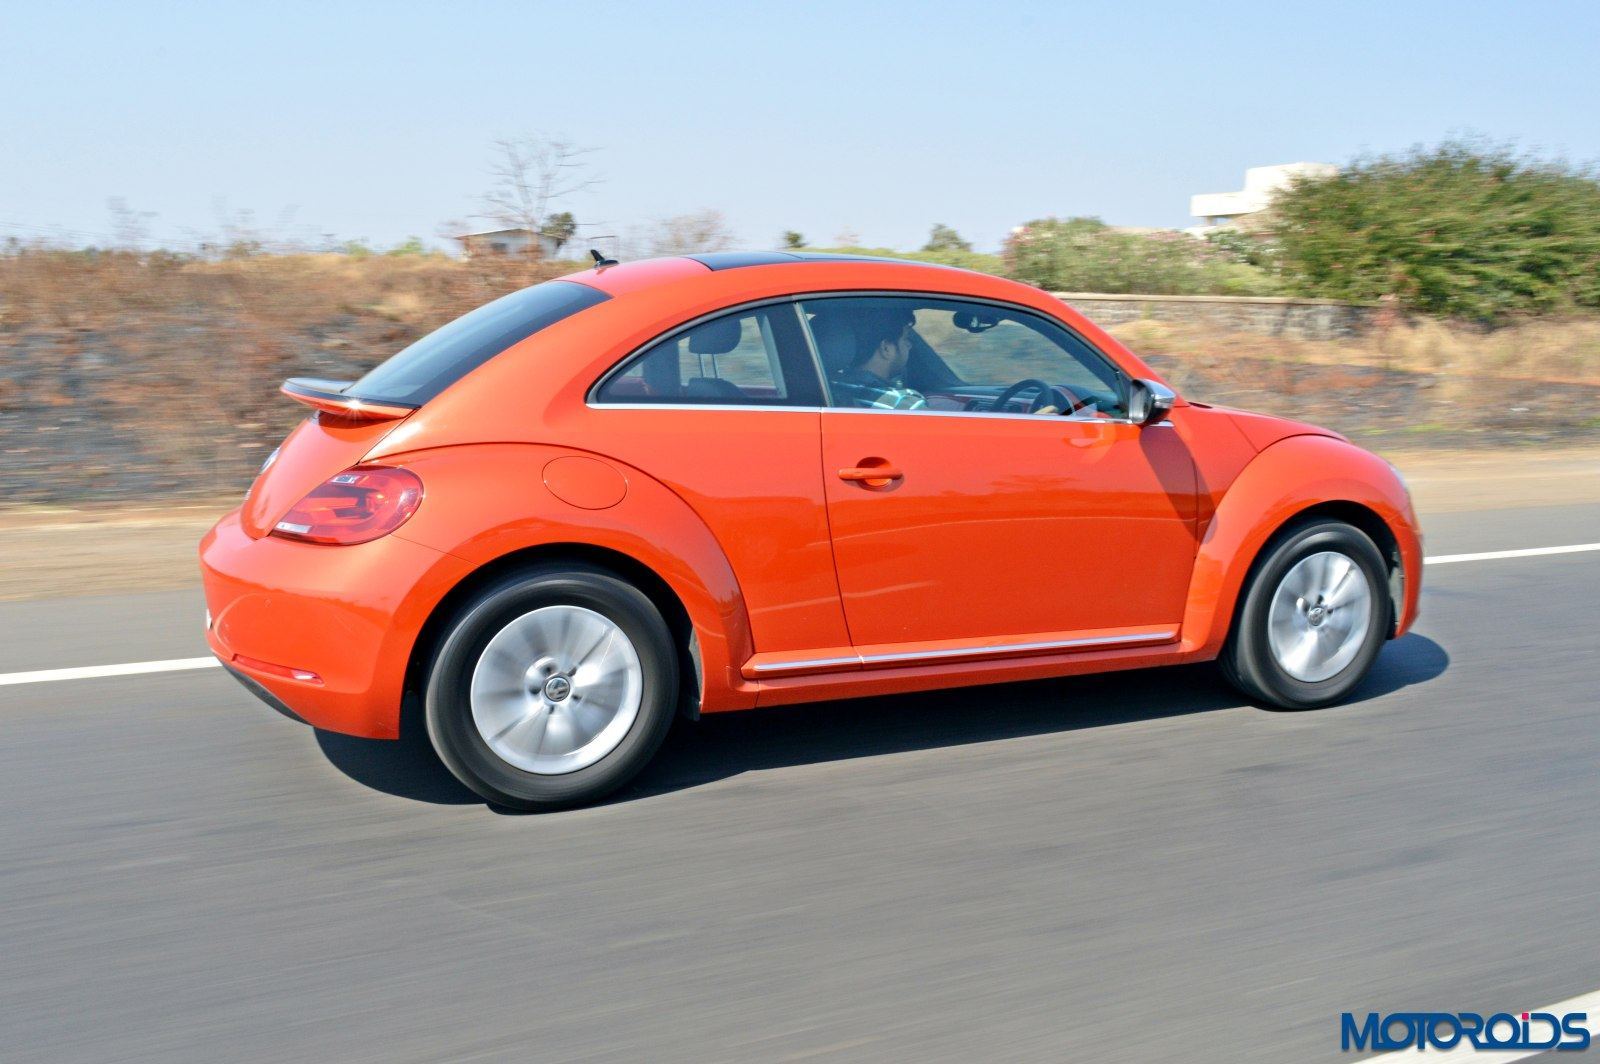 new 2016 vw volkswagen beetle india orange 7. Black Bedroom Furniture Sets. Home Design Ideas